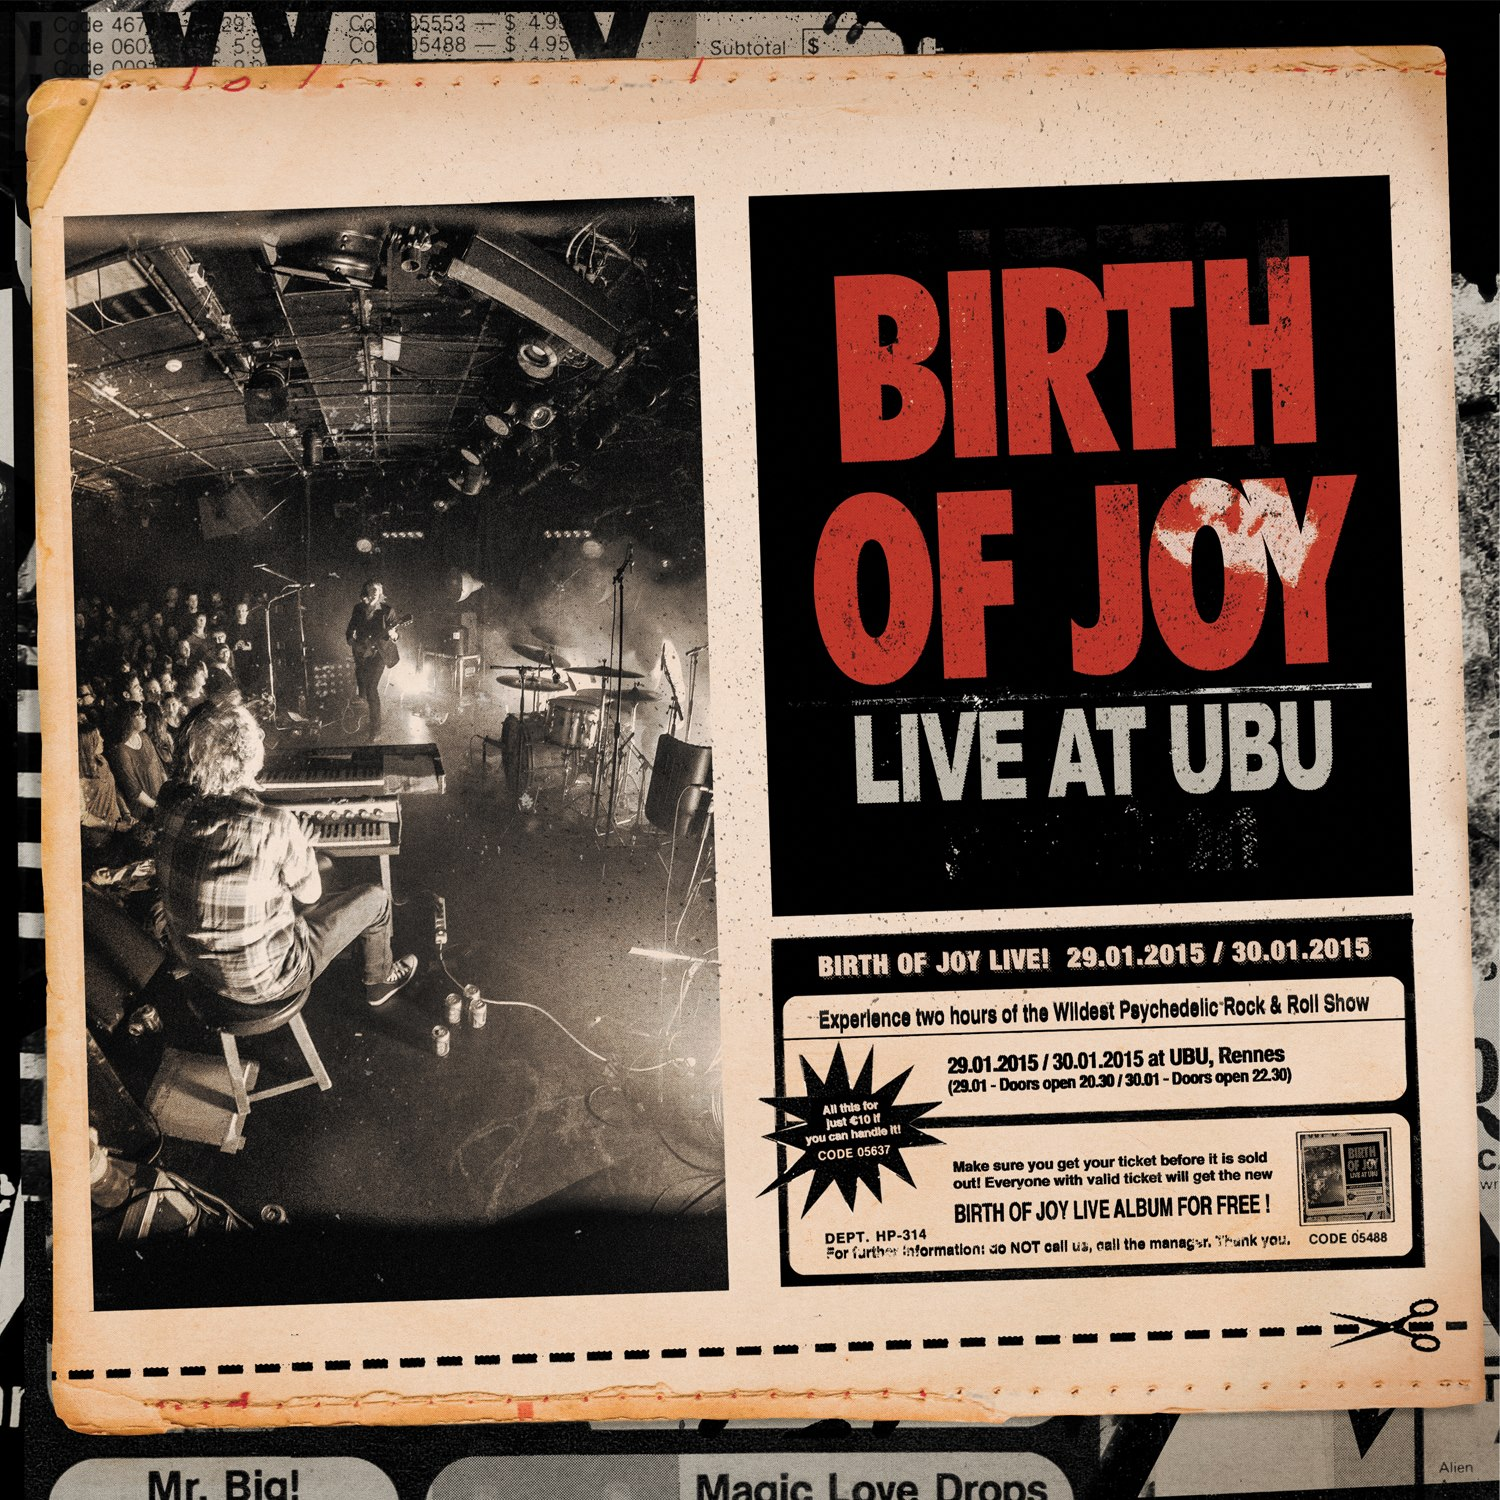 Birth of Joy Live at UBU pochette album